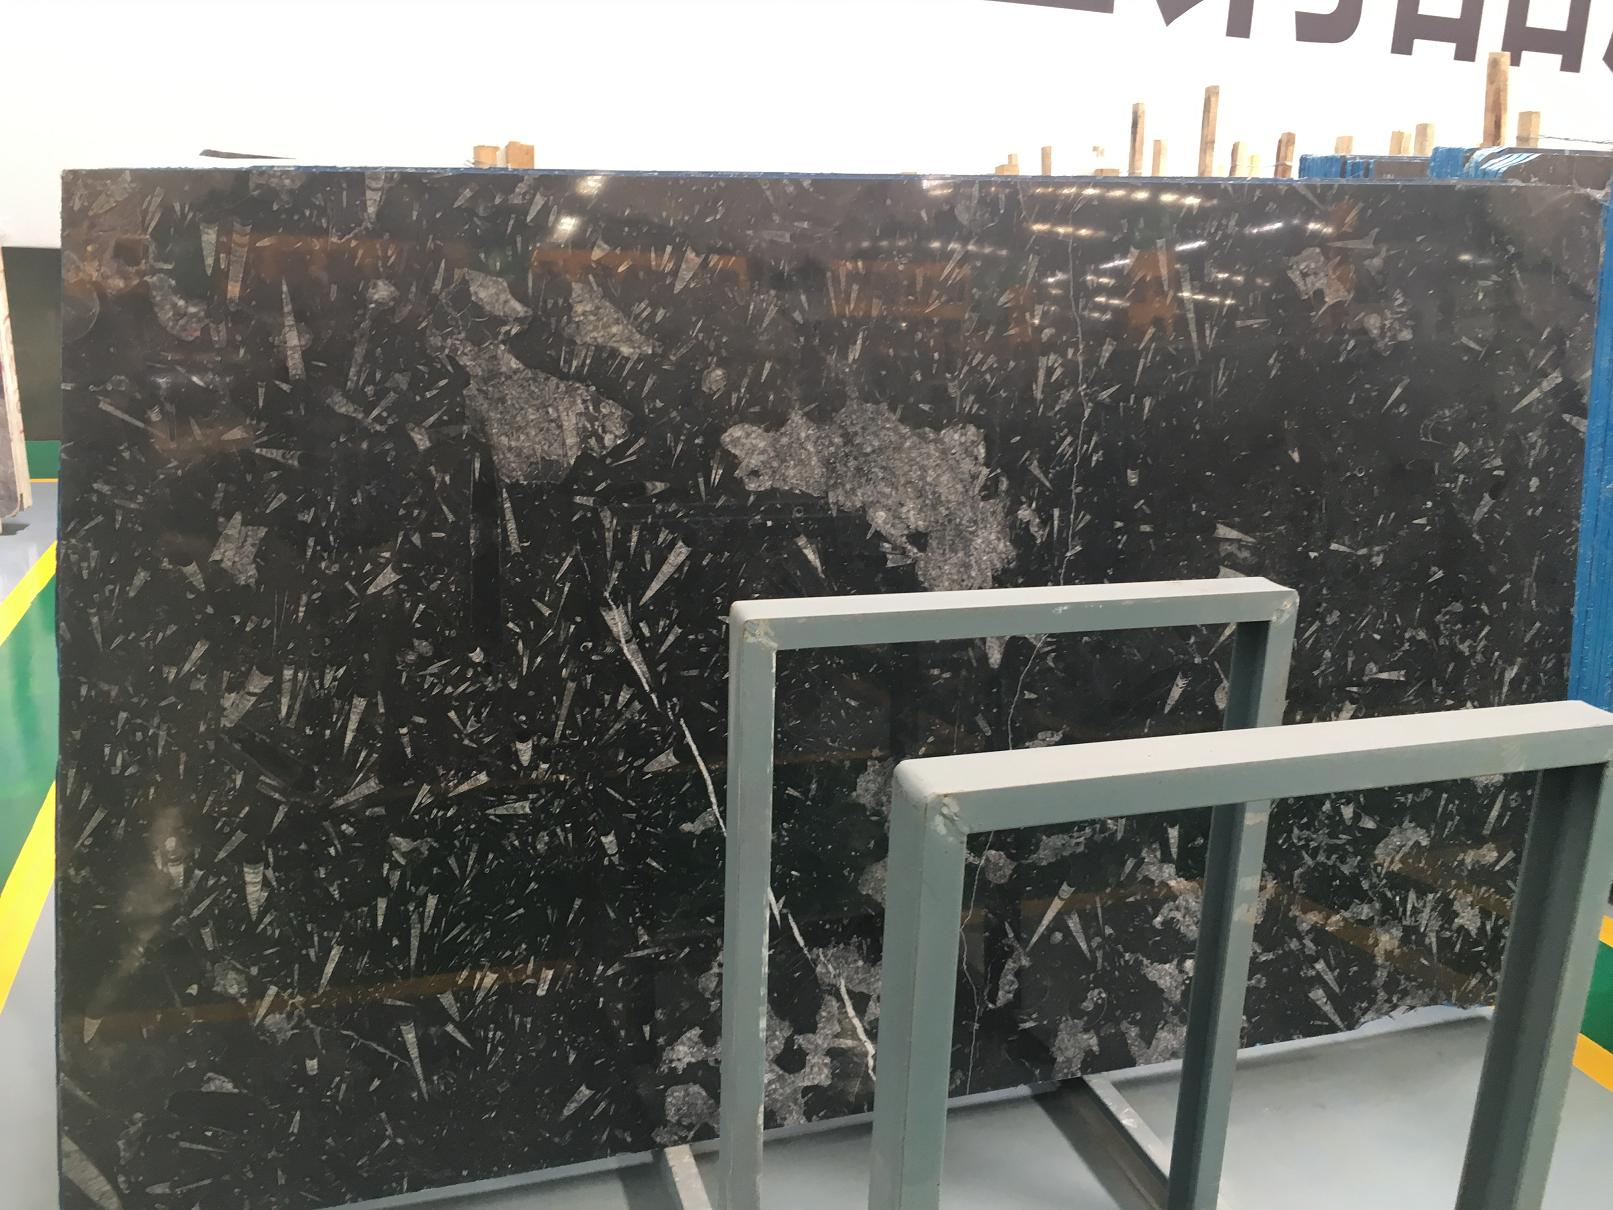 Black Fossil Marble Tiles & Slabs Polished Big Slabs Tiles For Wall Floor Covering